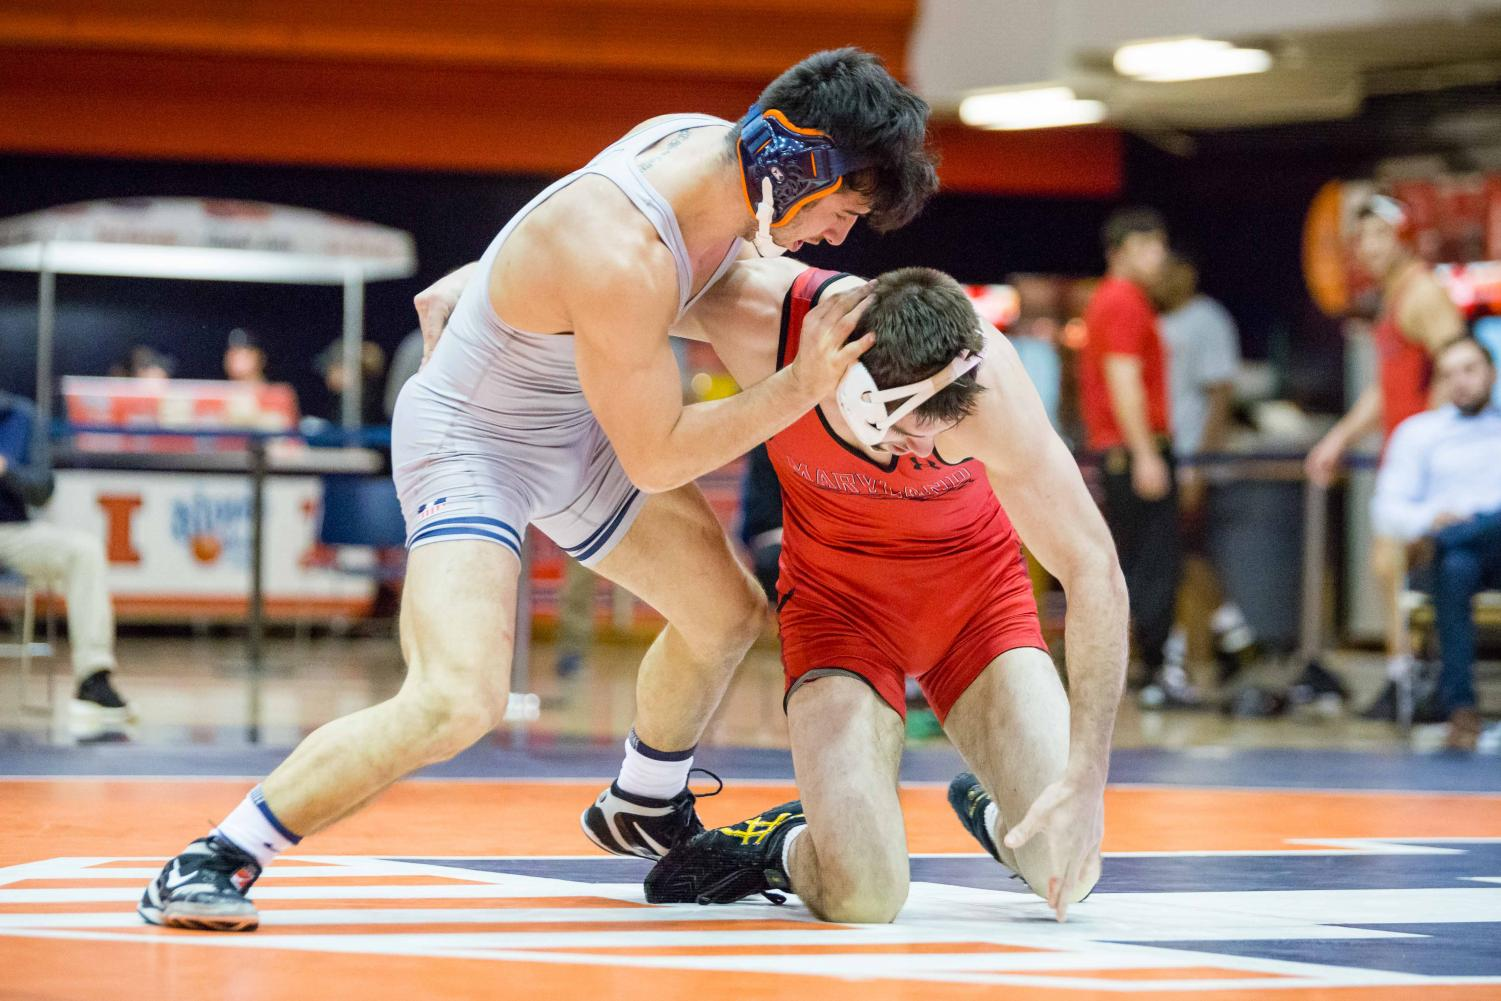 Illinois' Isaiah Martinez wrestles with Maryland's Brendan Burnham in the 165-pound weight class during the meet at Huff Hall on Jan. 28. The Illini won 25-18.